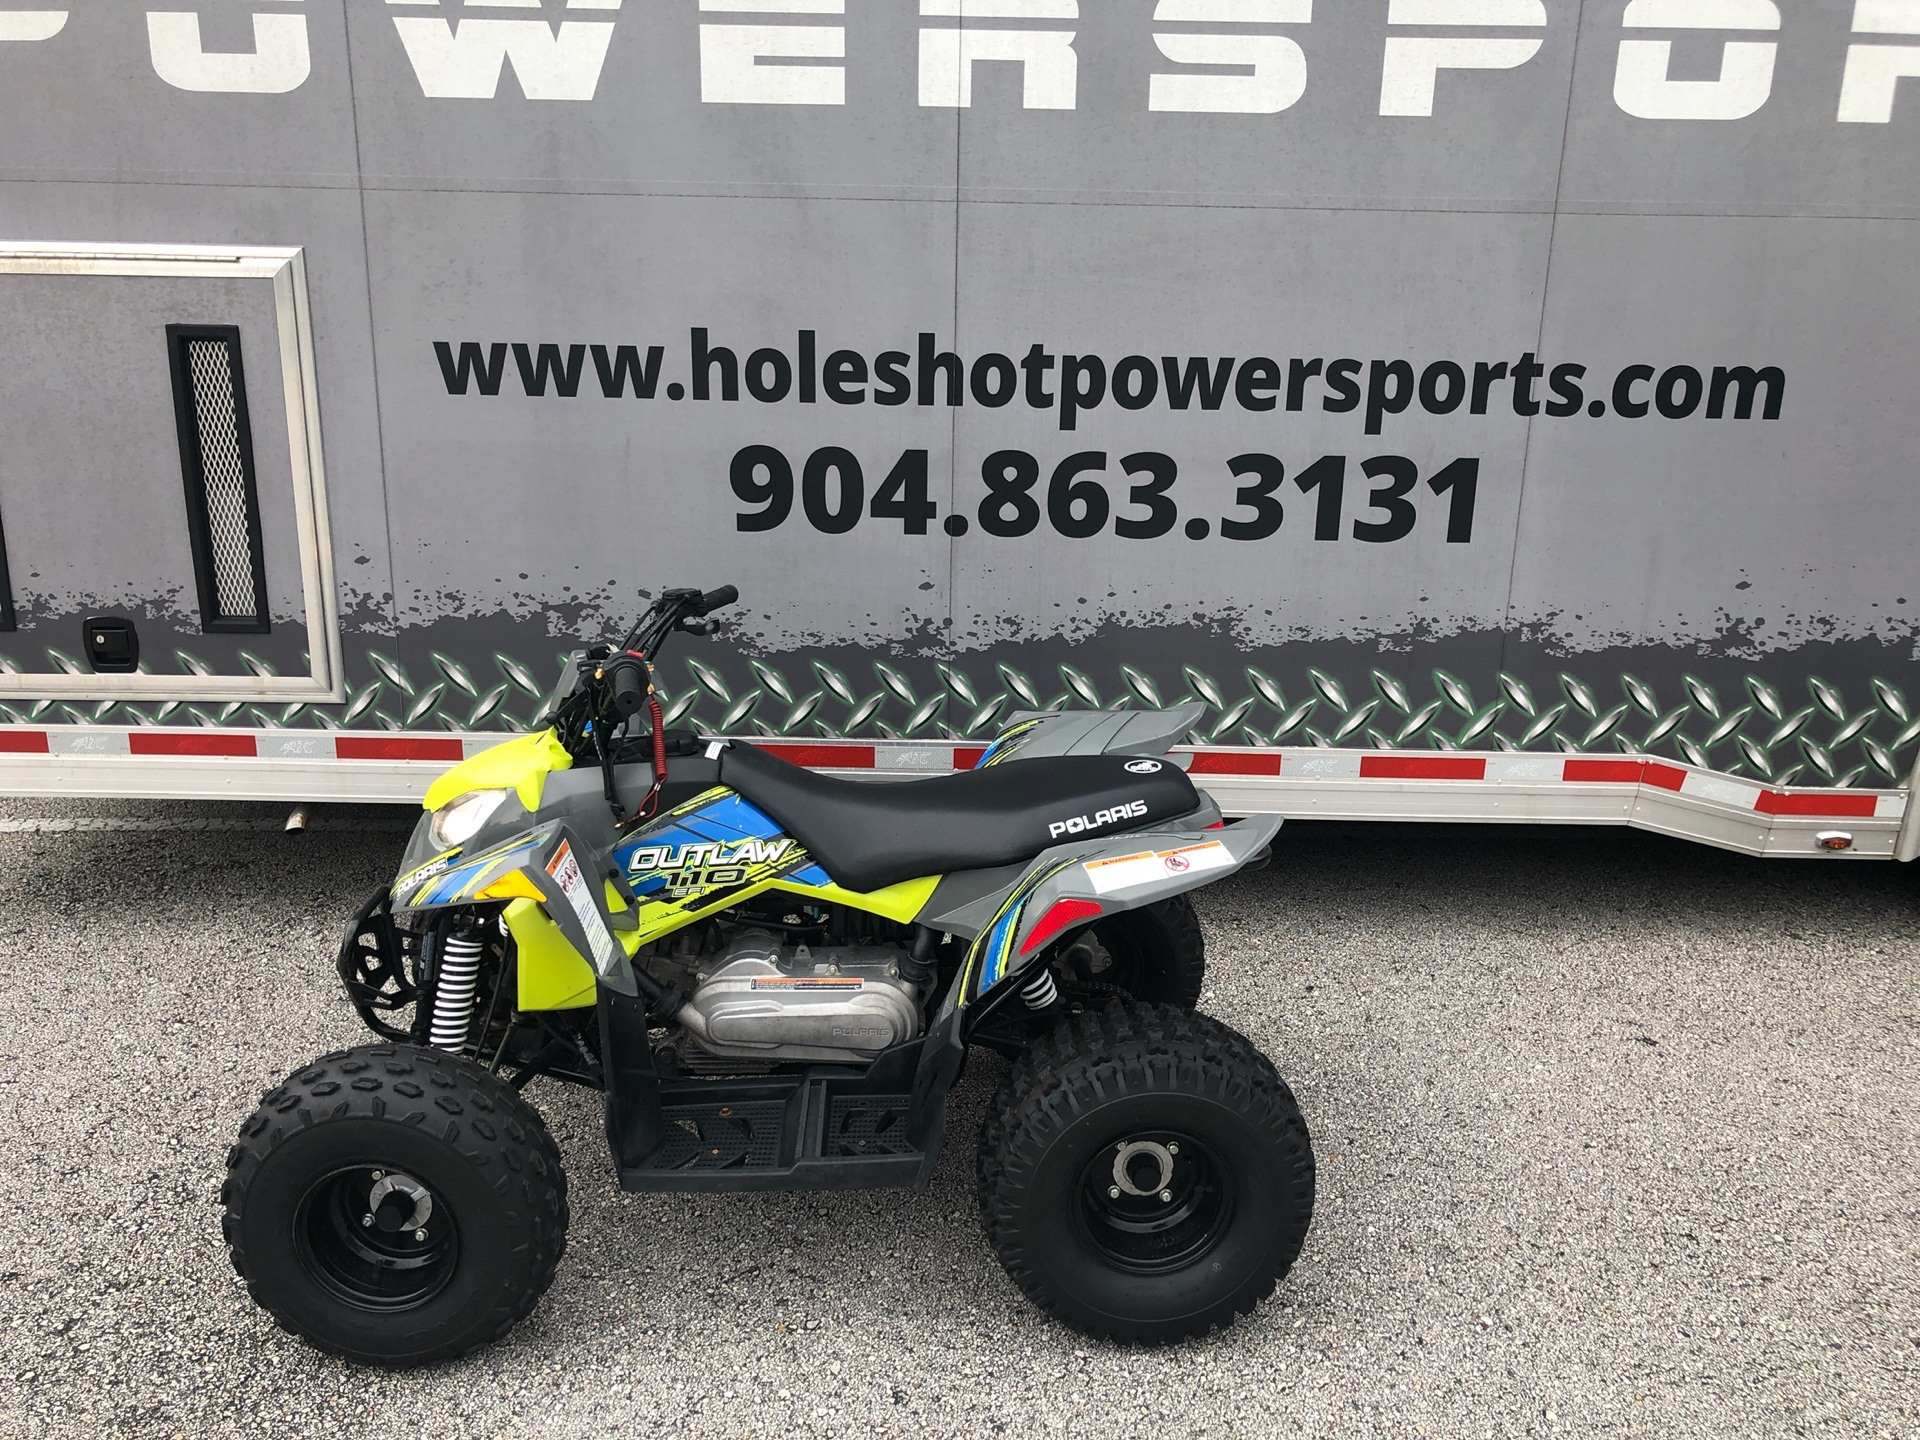 2020 Polaris Outlaw 110 in Fleming Island, Florida - Photo 3